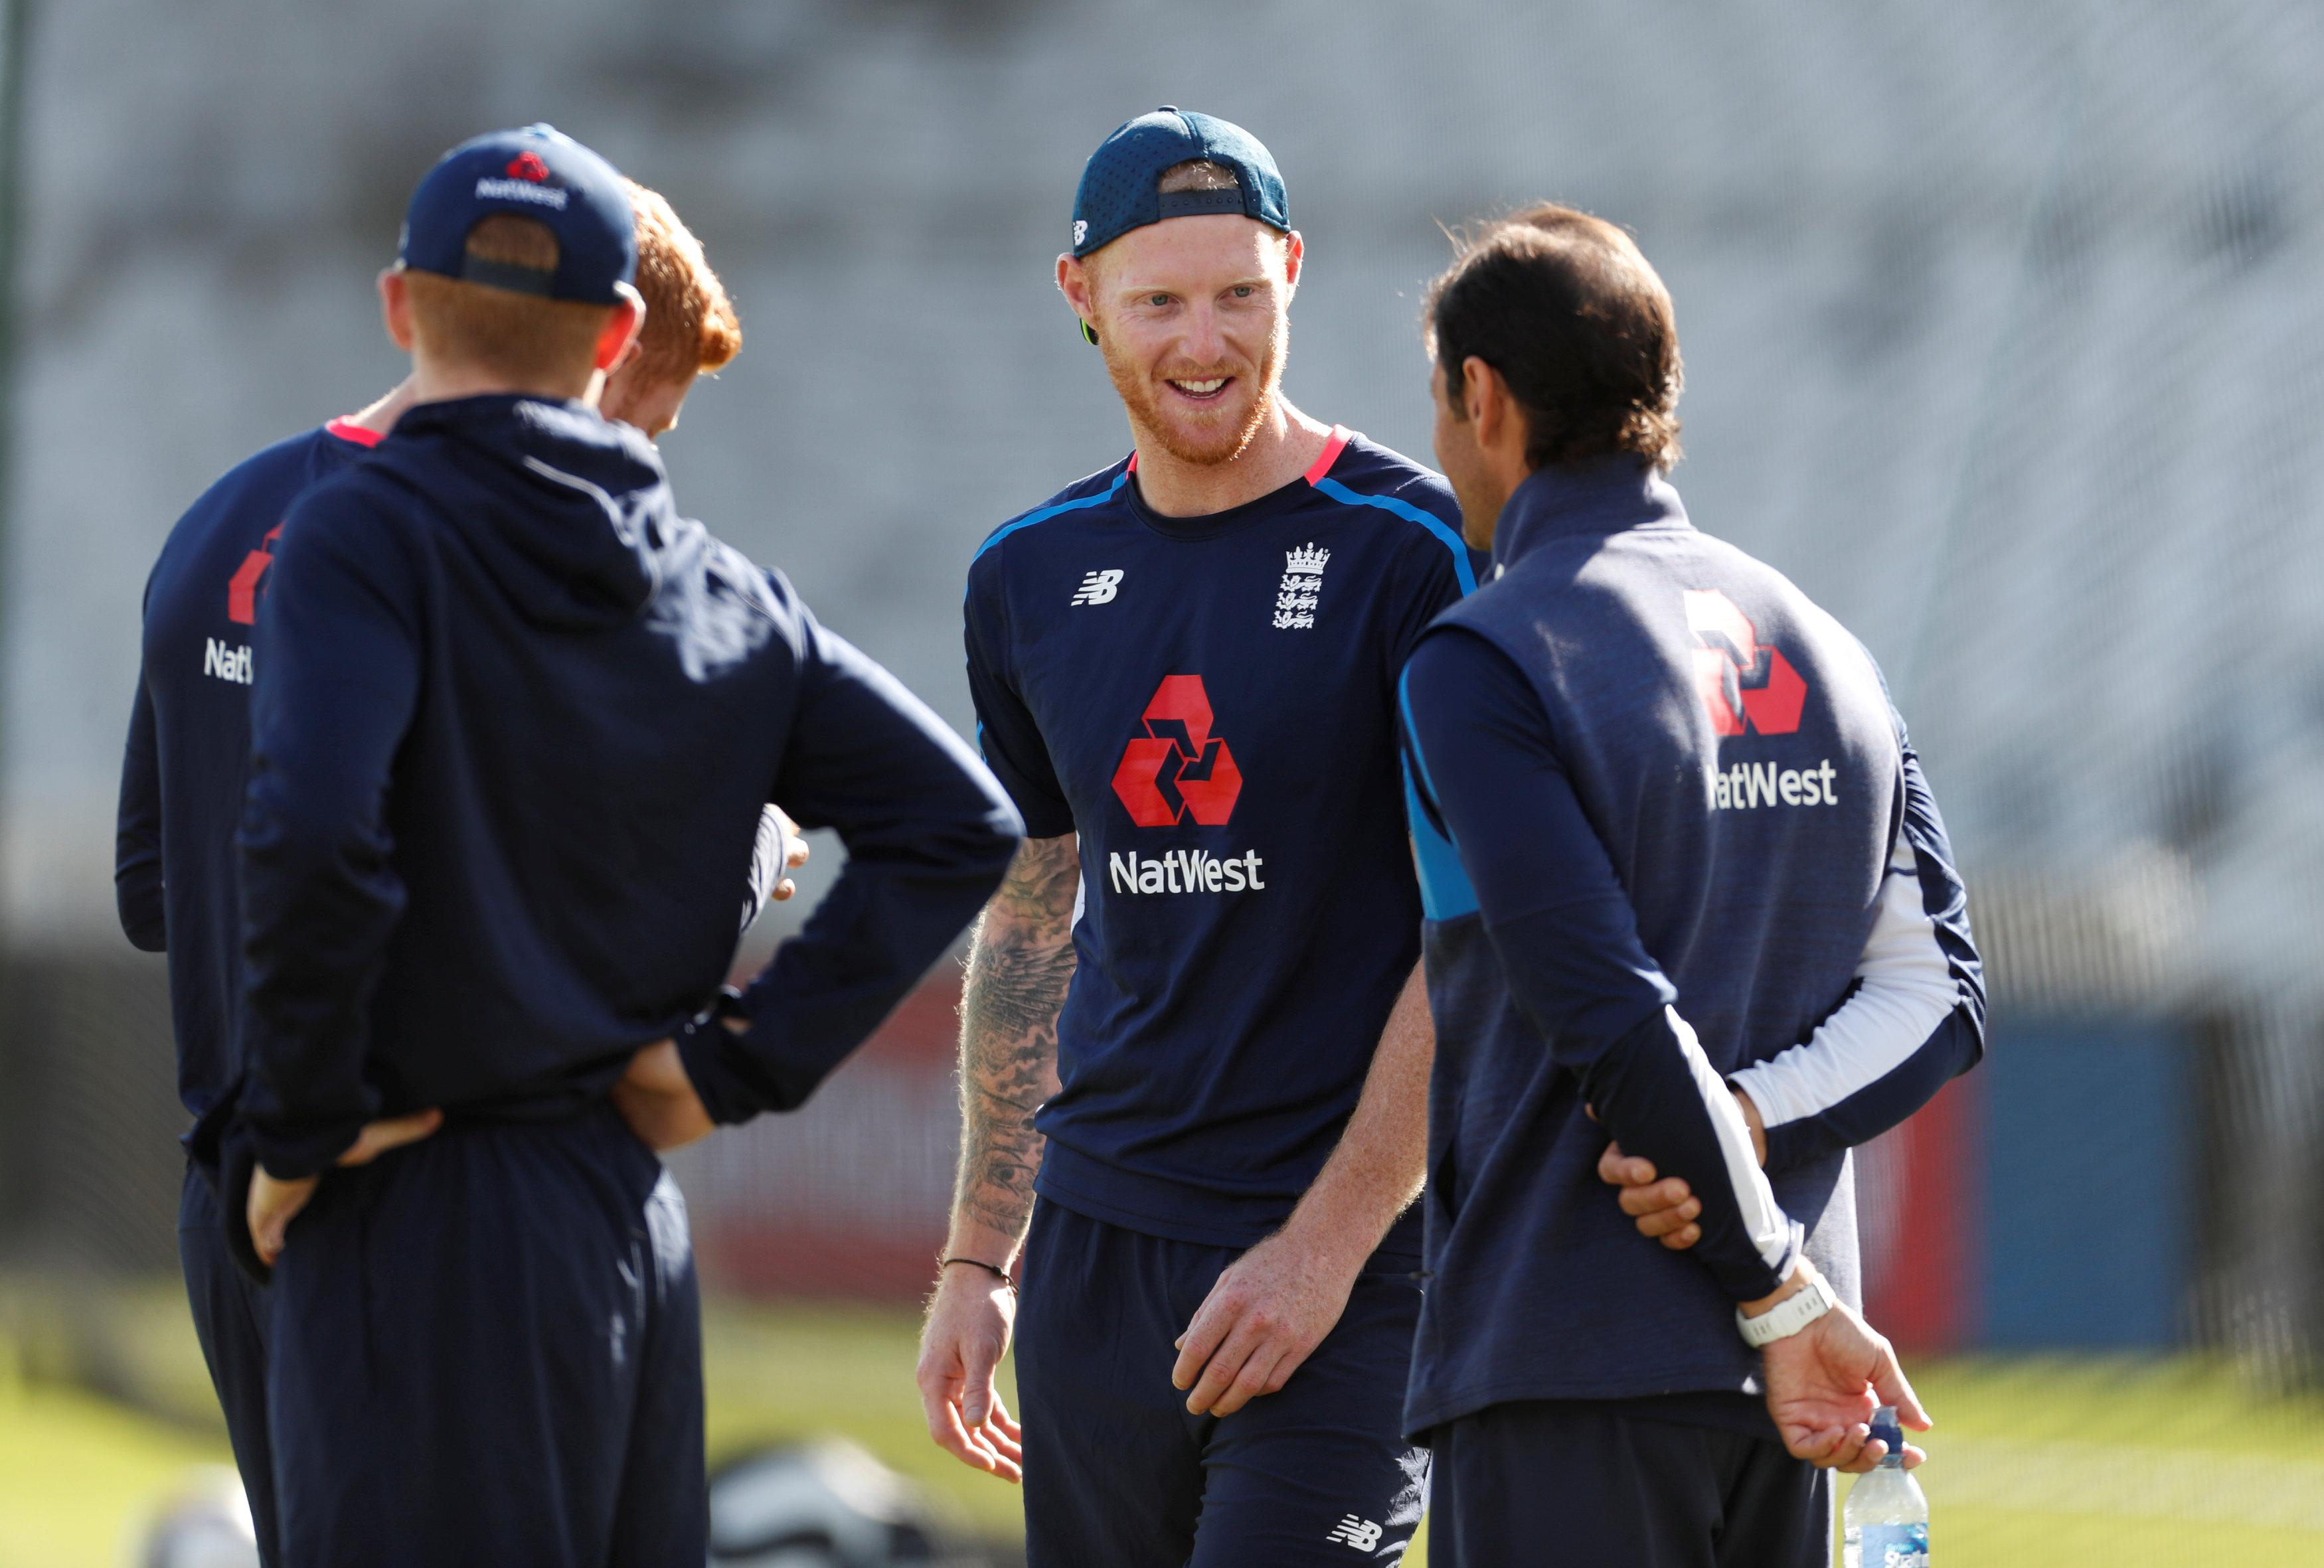 Ben Stokes is back in the England team after being found not guilty of affray